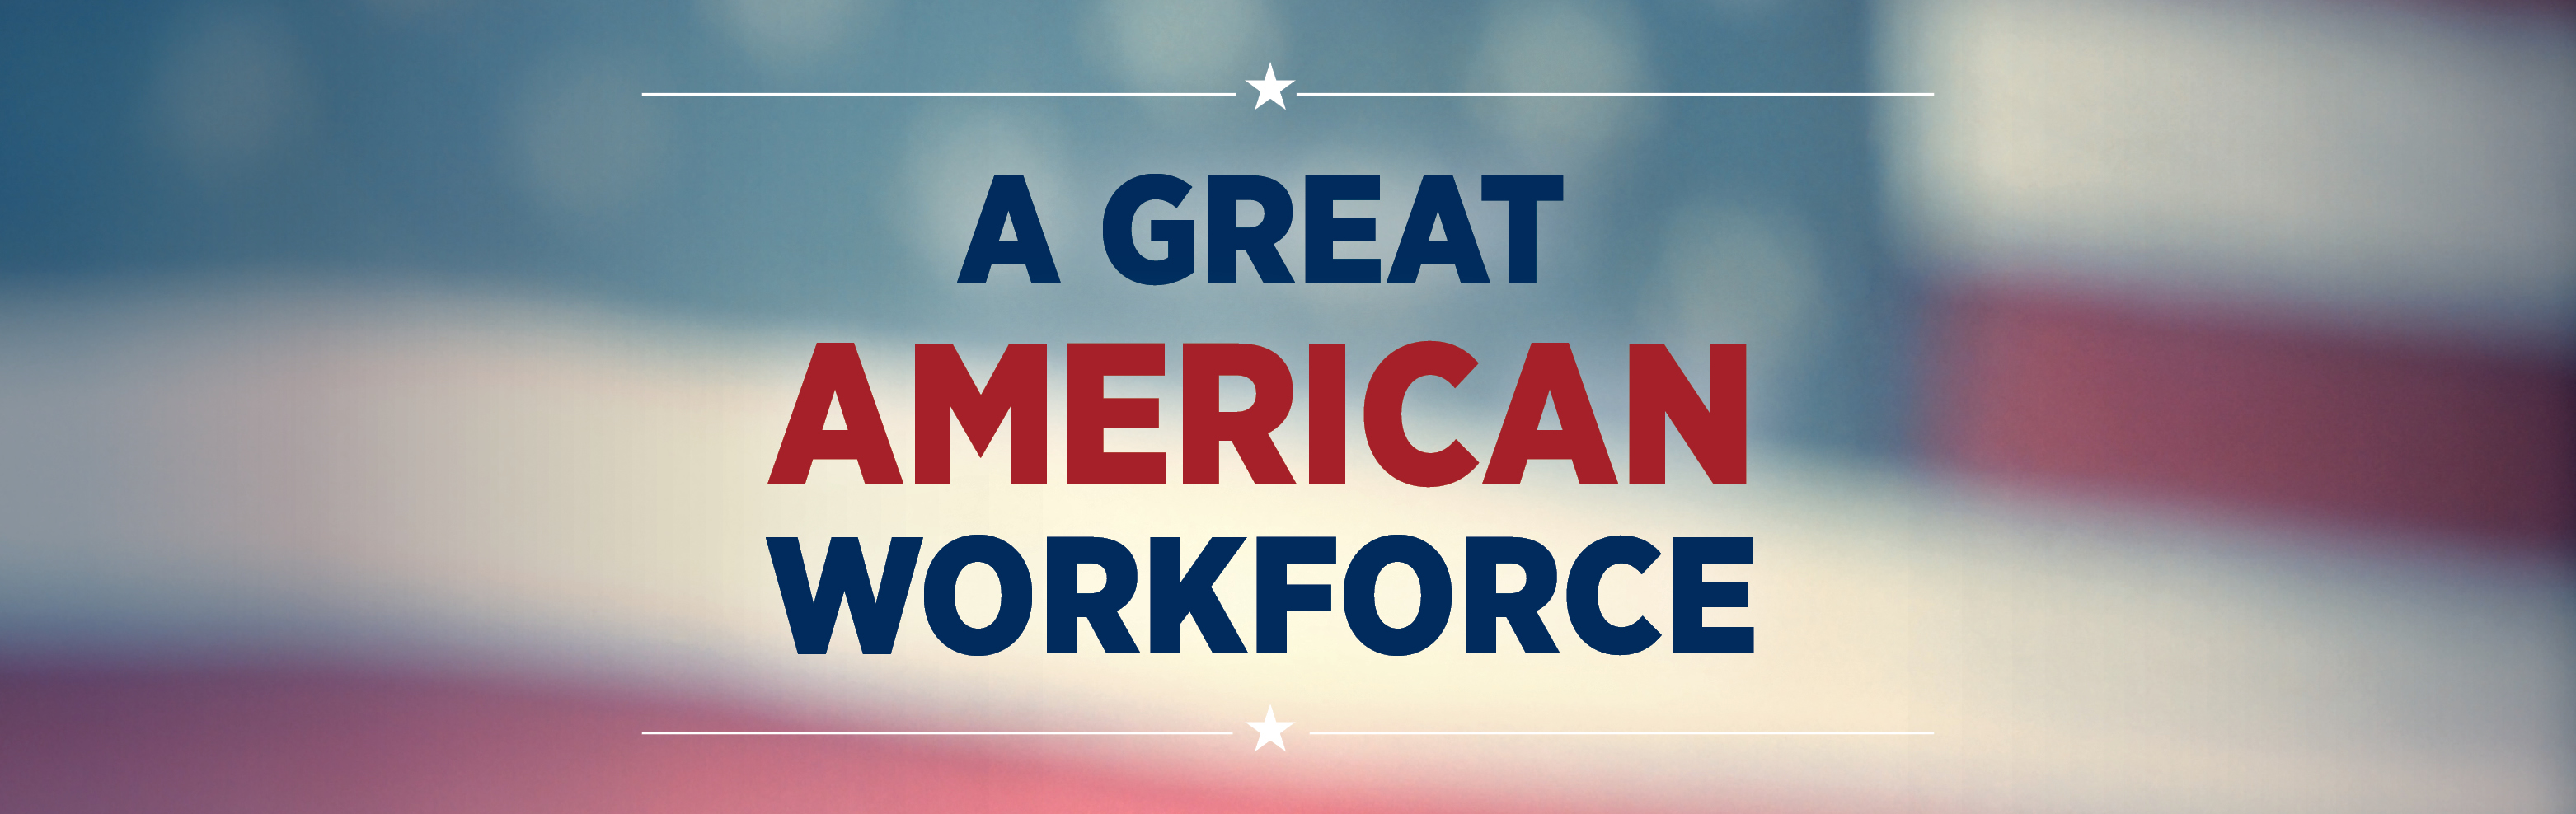 Header graphic that reads Great American Workforce with the American flag as the background